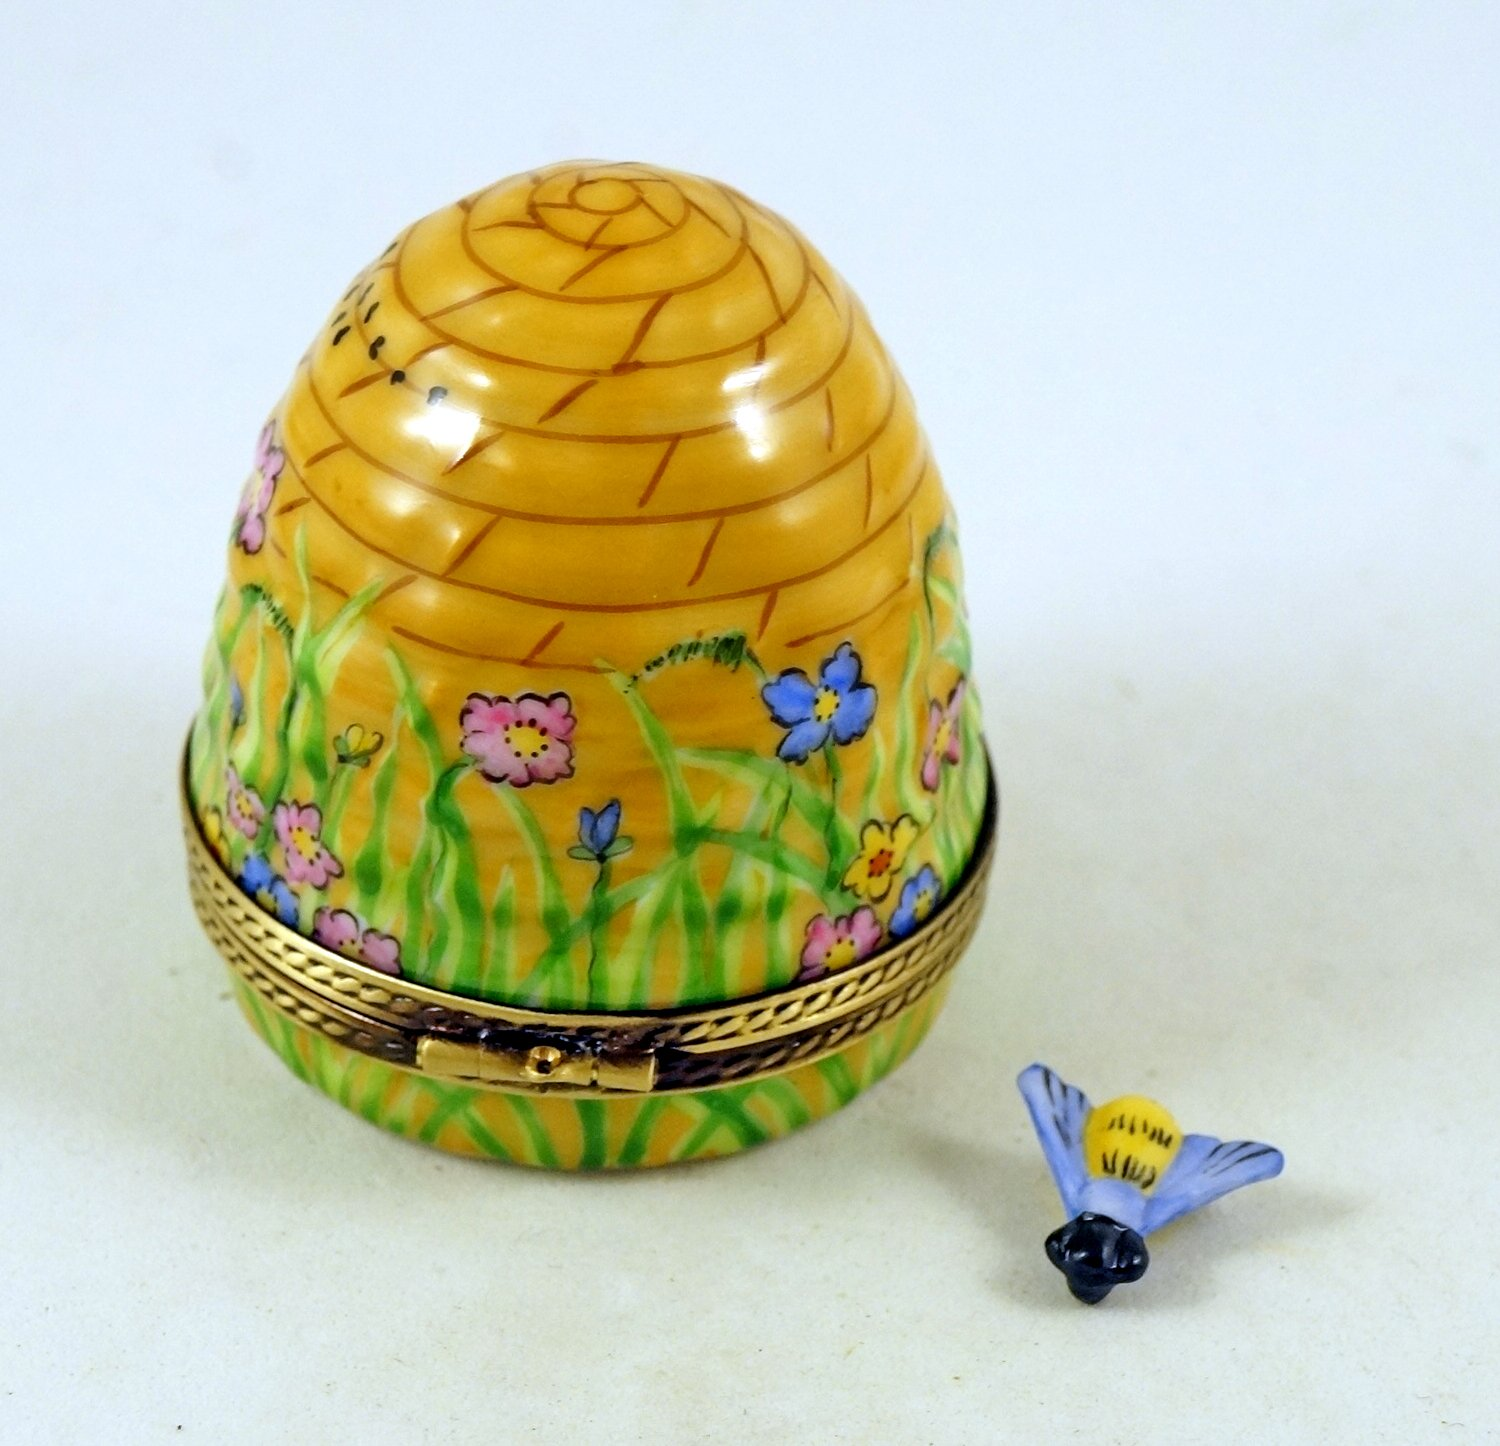 Authentic French Porcelain Hand Painted Limoges Trinket Box Amazing Colorful Beehive with Miniature Porcelain Removable Bee by Authentic Limoges Boxes (Image #2)